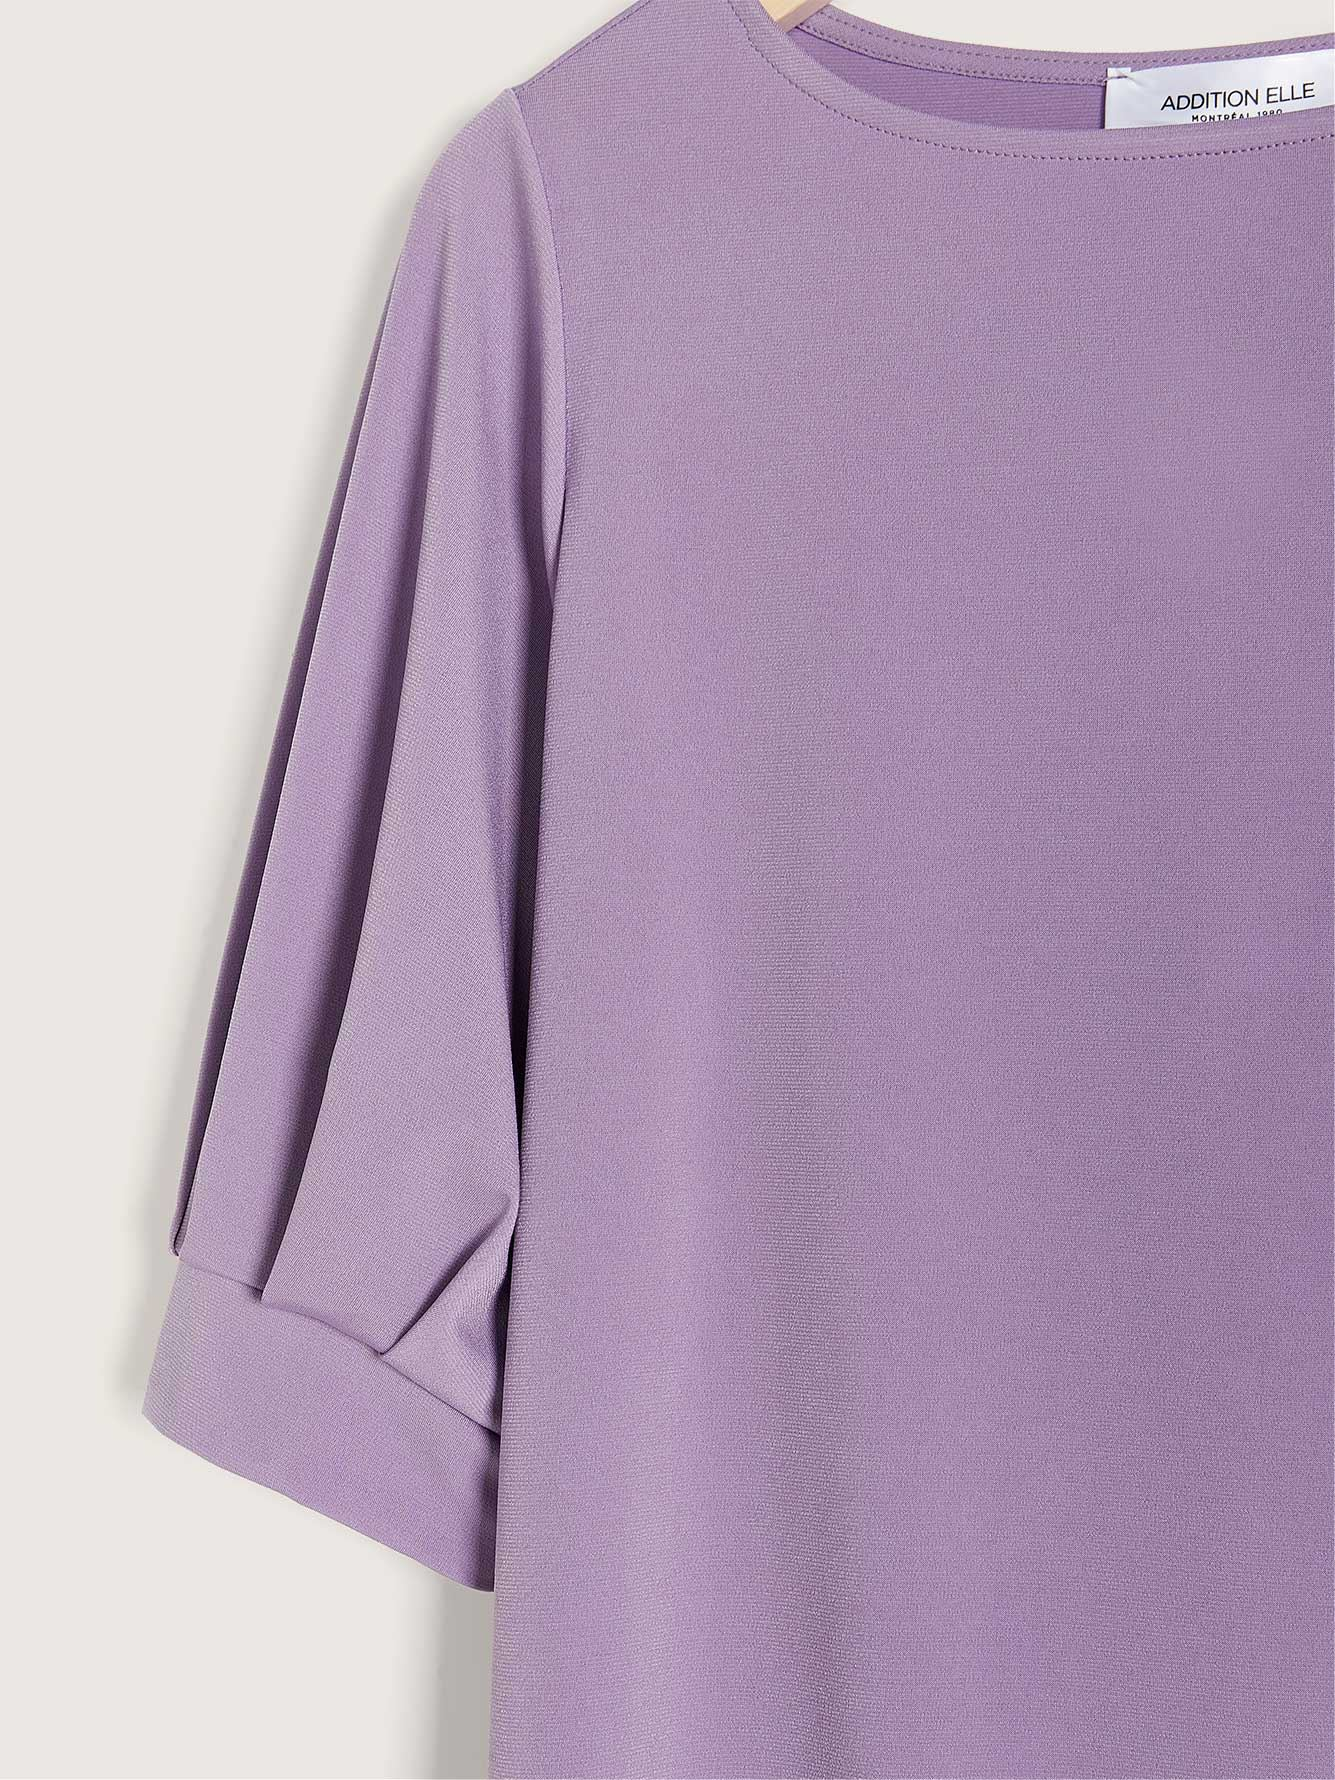 Boat Neck Elbow Sleeve Top - Addition Elle